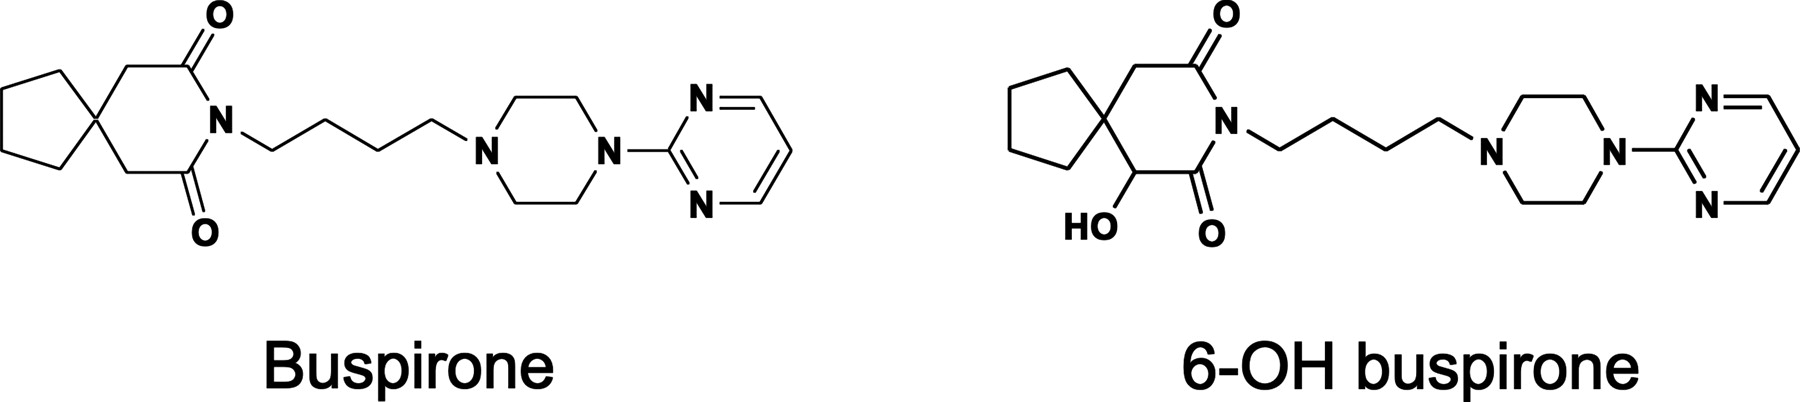 6-Hydroxybuspirone Is a Major Active Metabolite of Buspirone